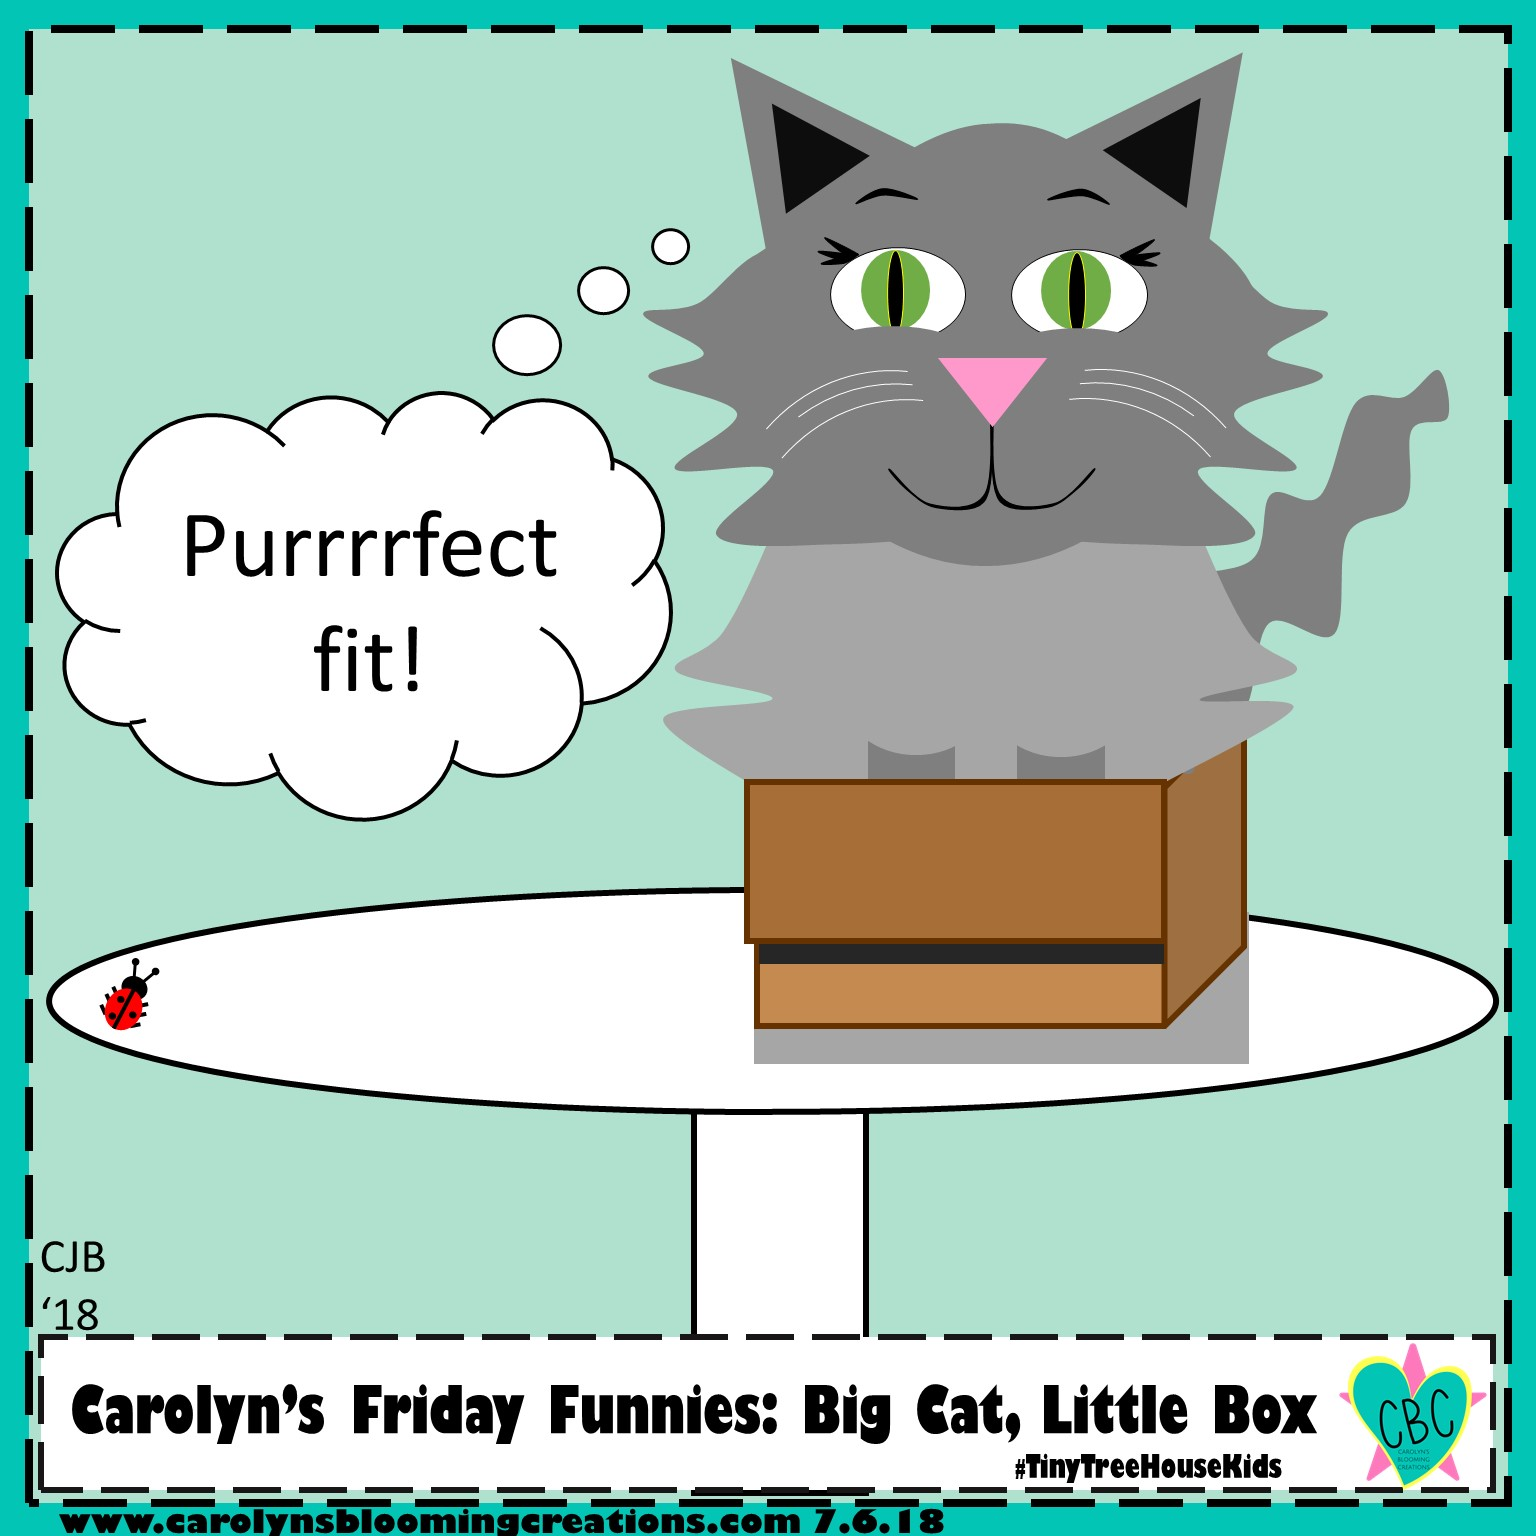 Second edition comic version by Carolyn J. Braden, July 2019, created with Microsoft PowerPoint  Pin me! www.carolynsbloomingcreations.com